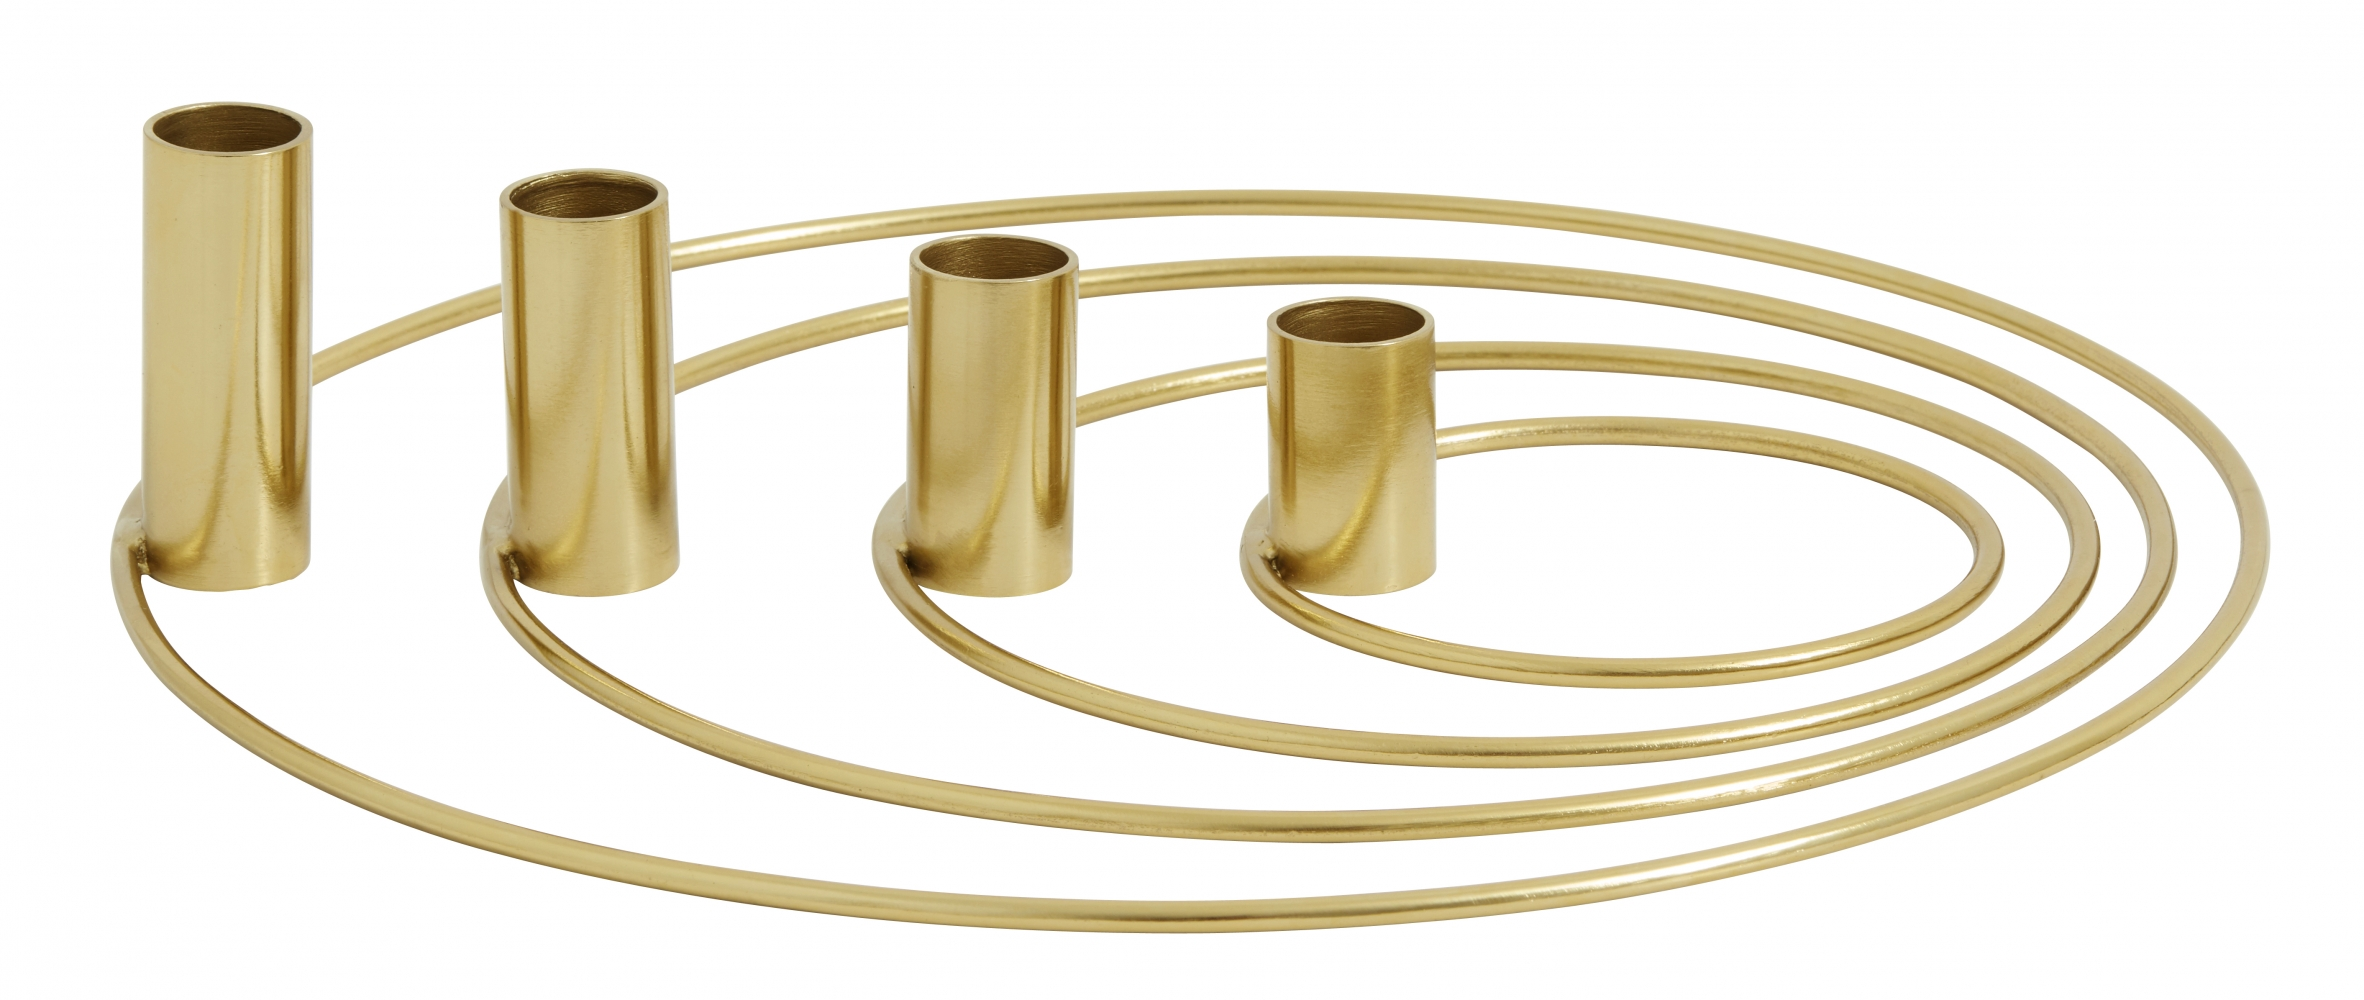 Ring Advent Candle Holders Set 4 Brass Nordal Eu